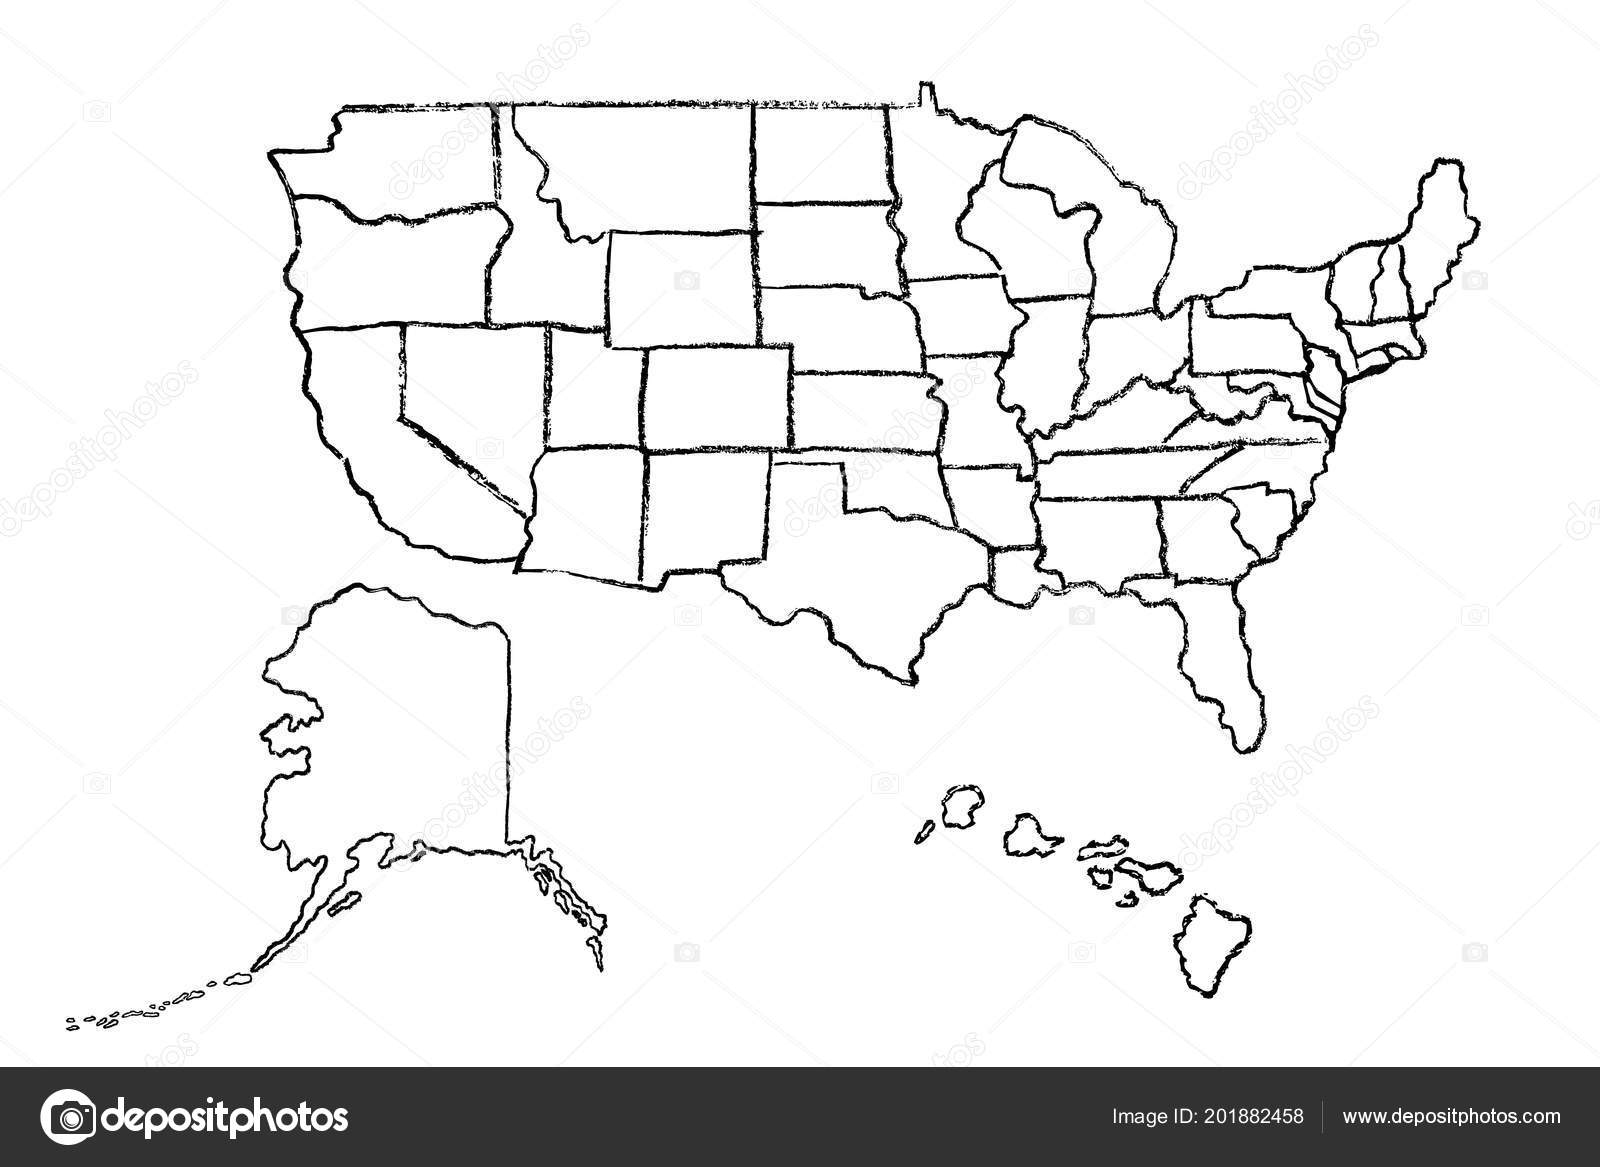 Hand Drawn Us Map.Hand Drawn Map United States America Usa States Alaska Hawaii